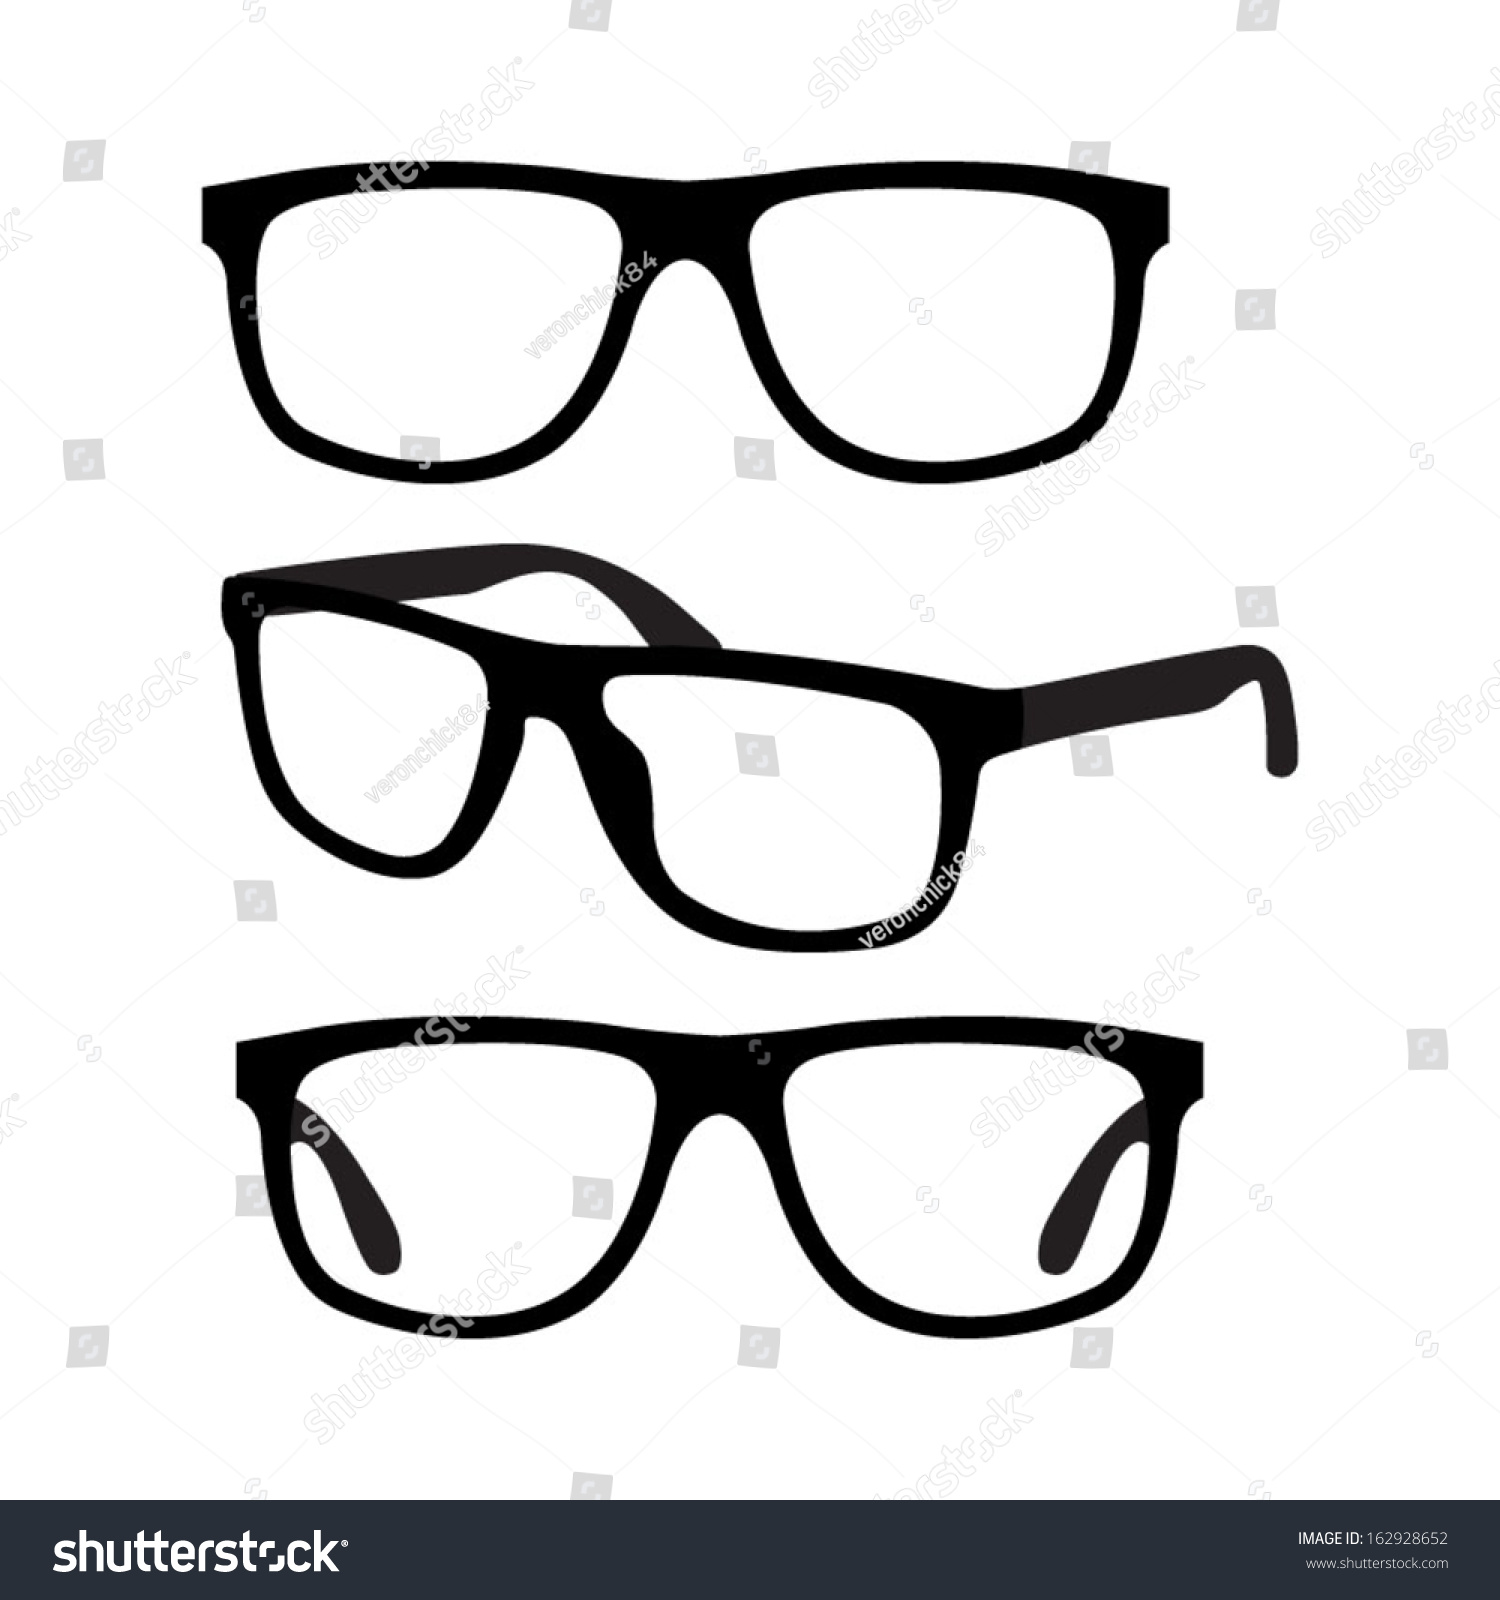 Glasses Frames Vector : Glasses Vector Set - 162928652 : Shutterstock